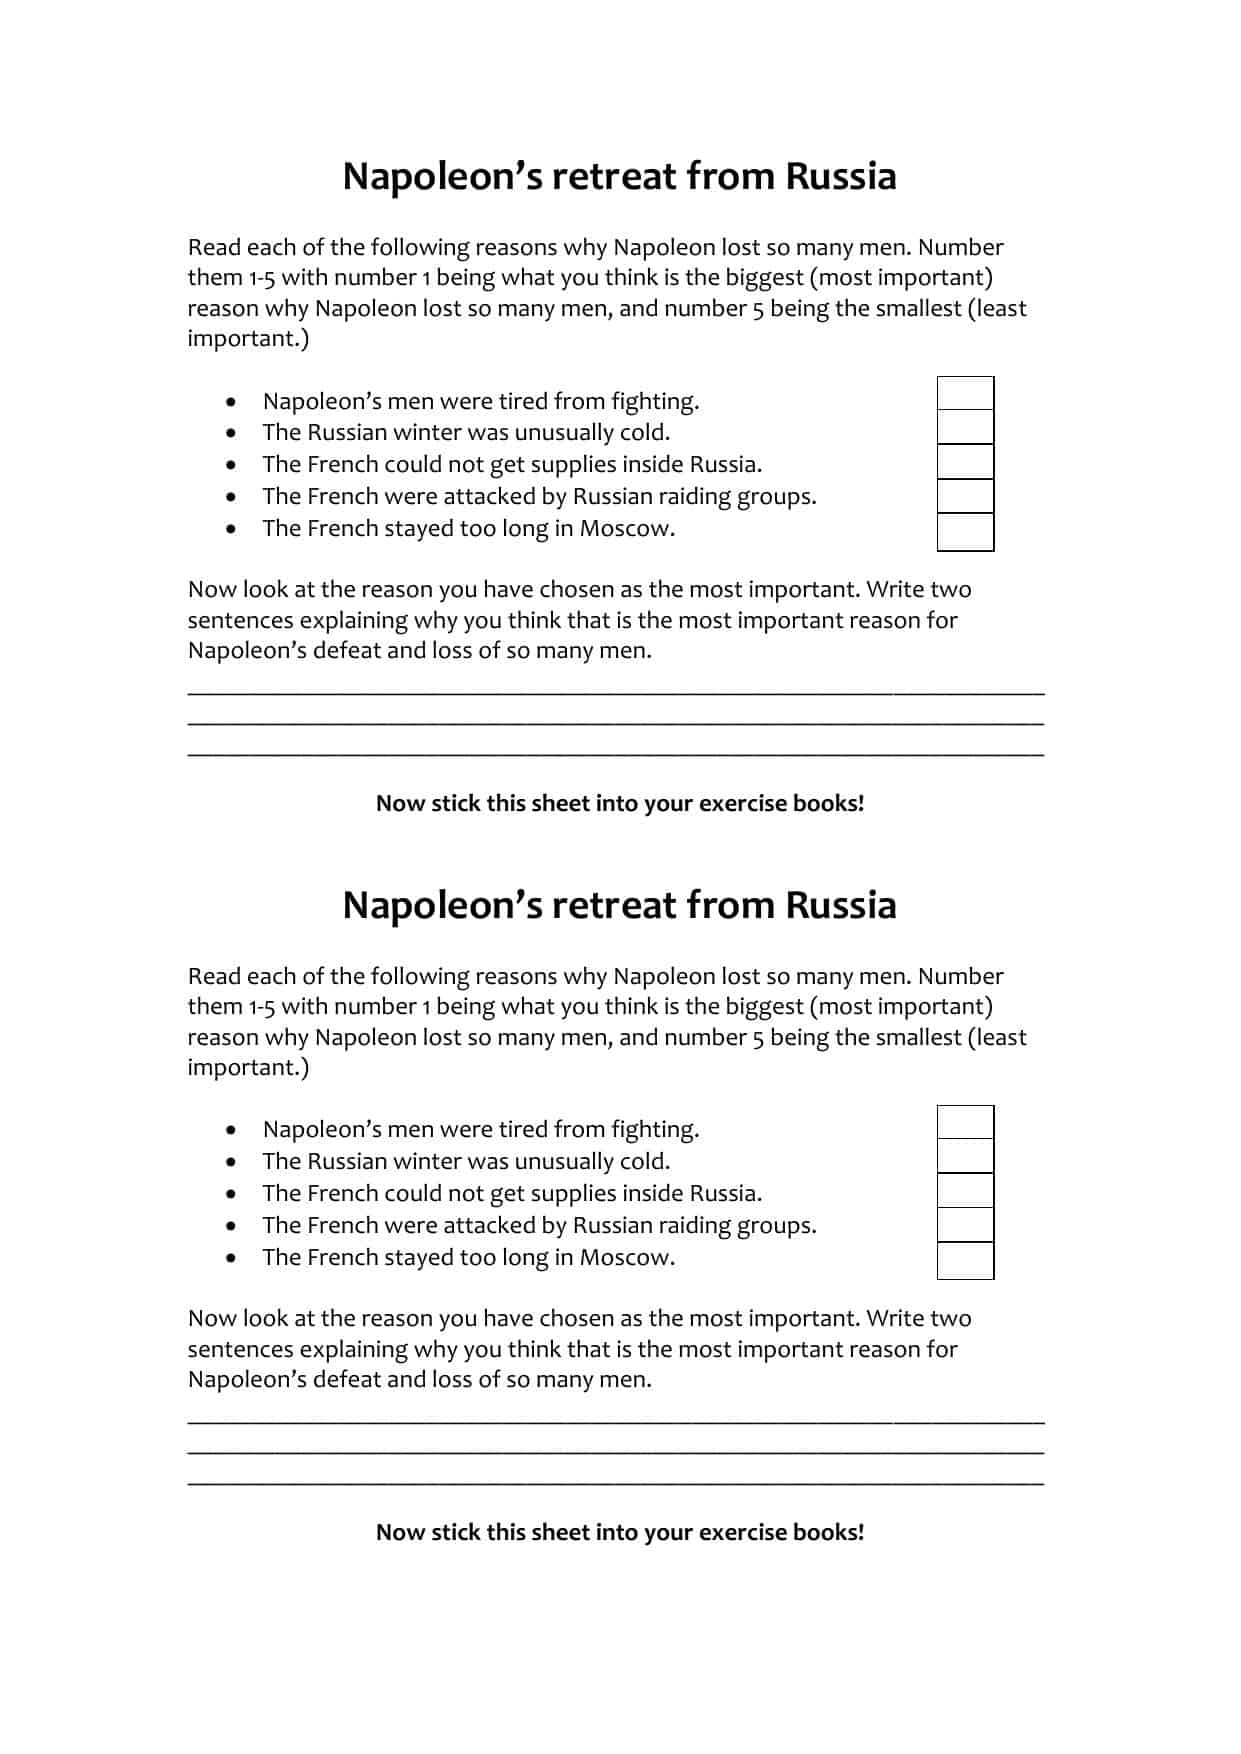 Napoleons Retreat From Russia Task Worksheet